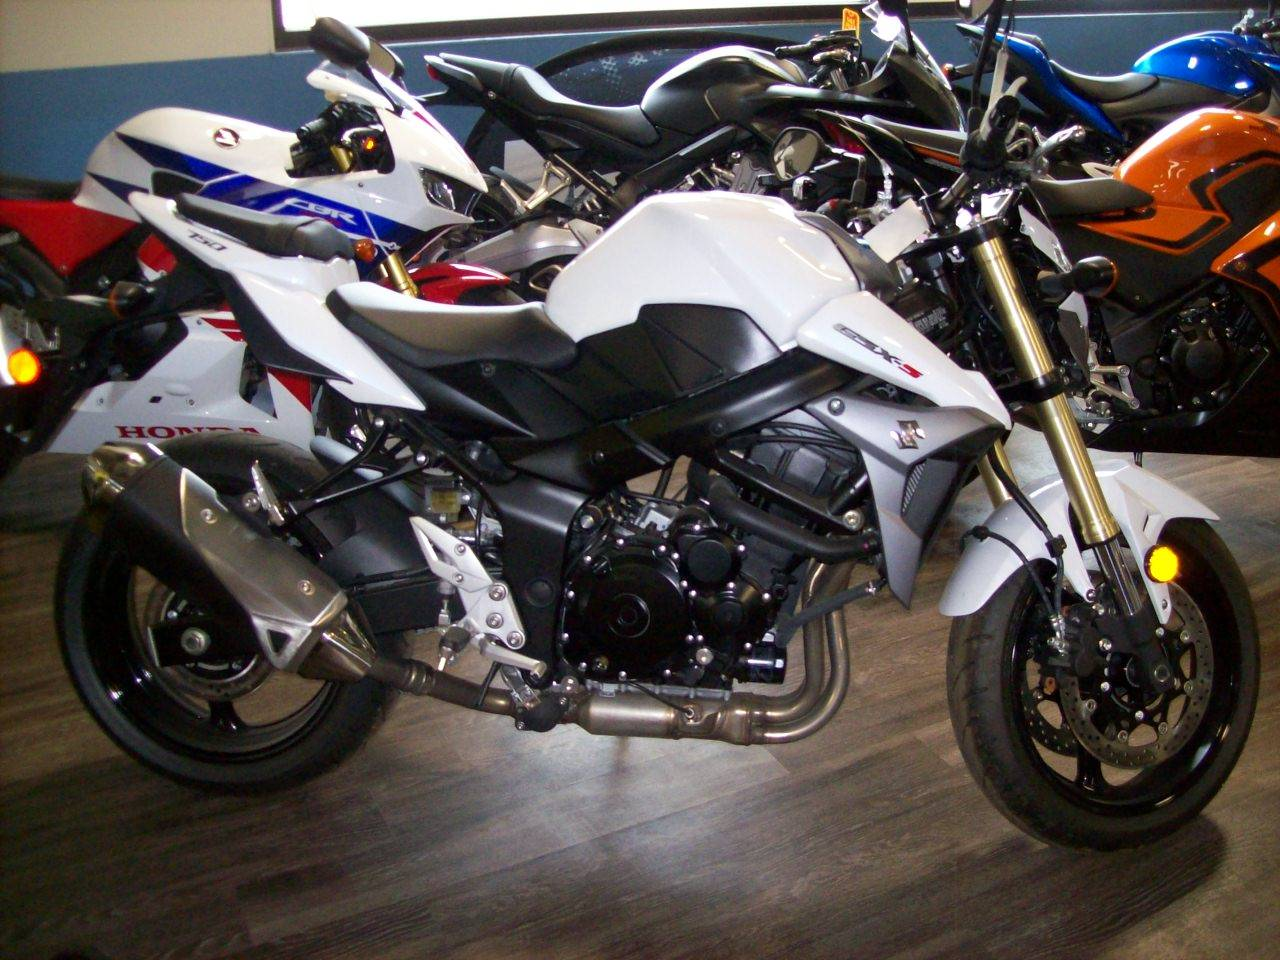 2016 Suzuki GSX-S750 for sale 237745